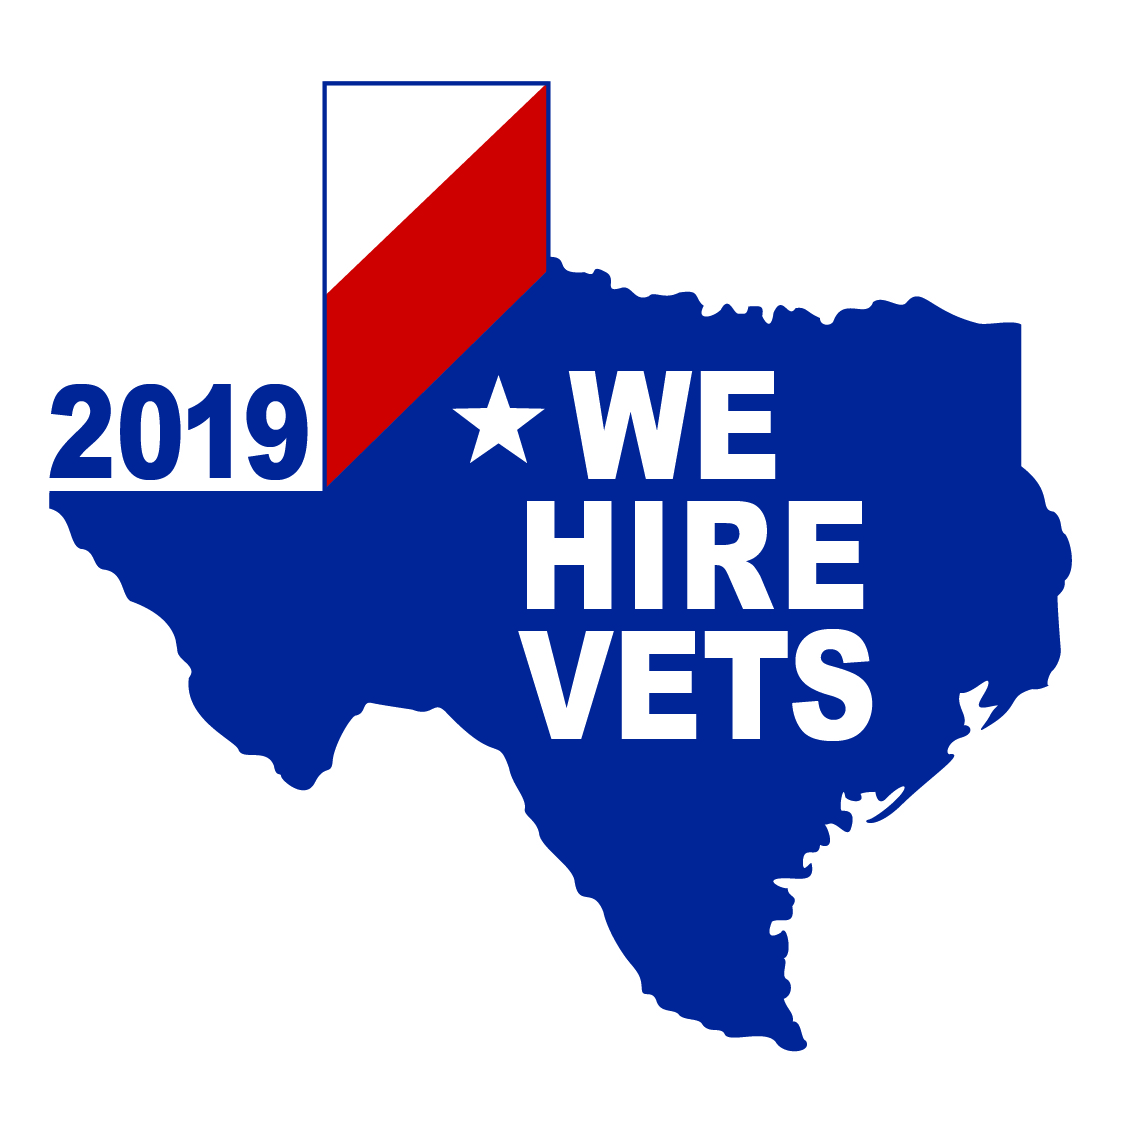 We Hire Vets Decal 2019 01